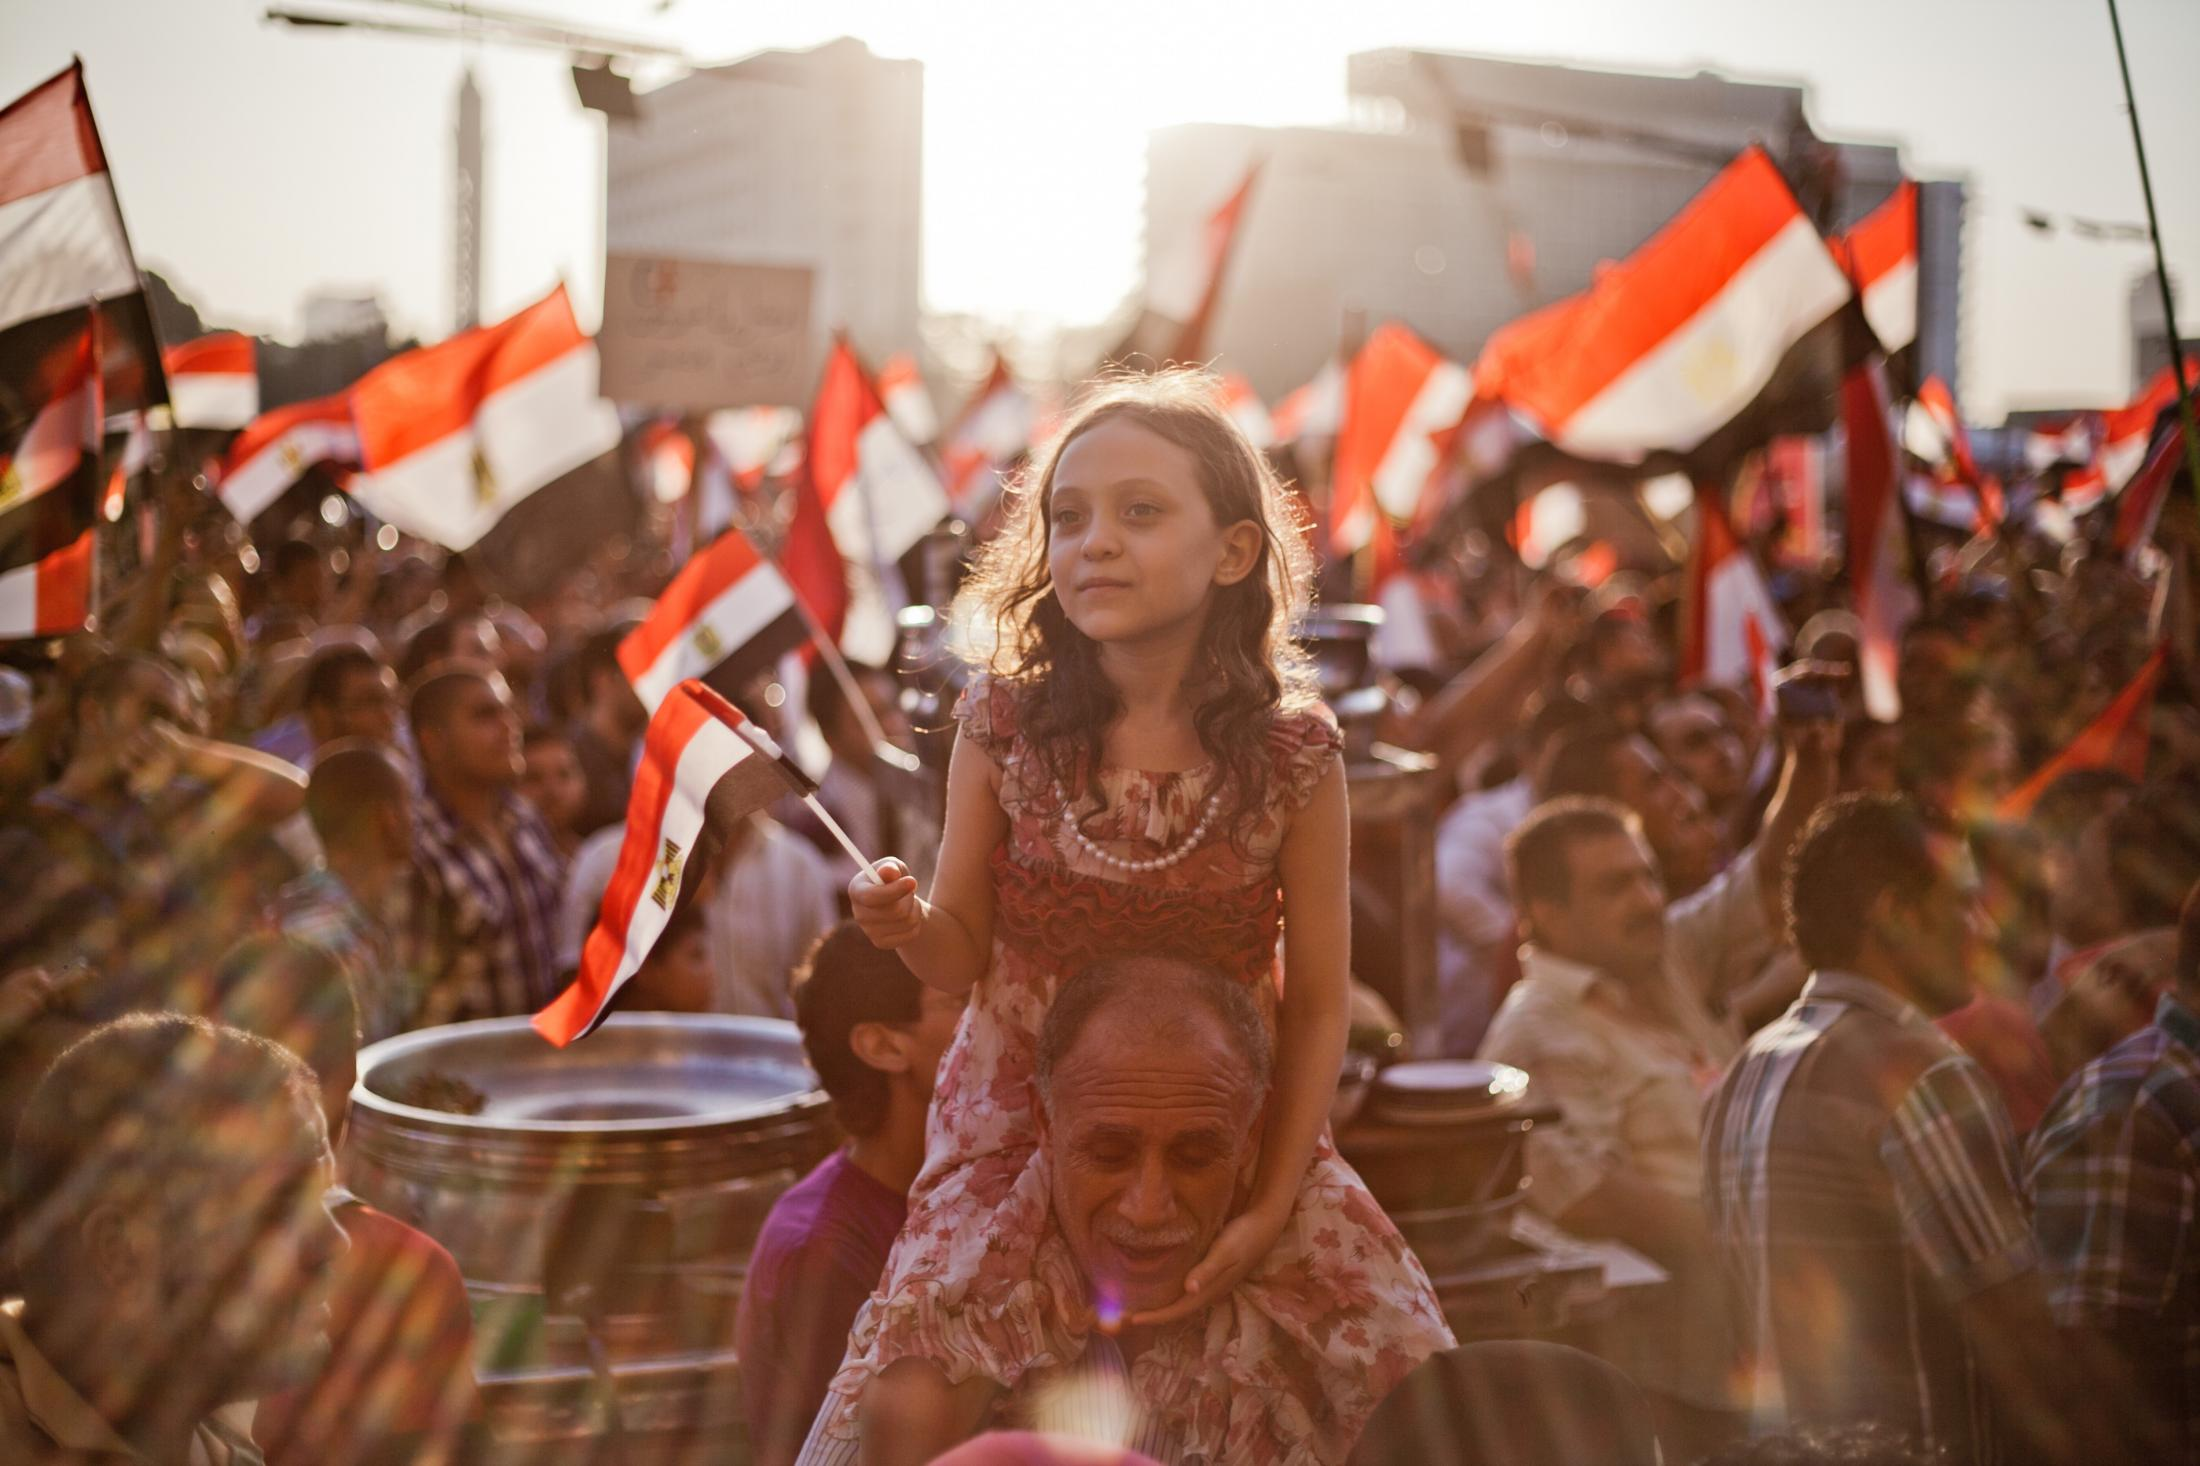 Thousands of protesters gathered in Egypt's Tahrir Square on June 28, 2013 calling for the resignation of President Mohamed Morsi.